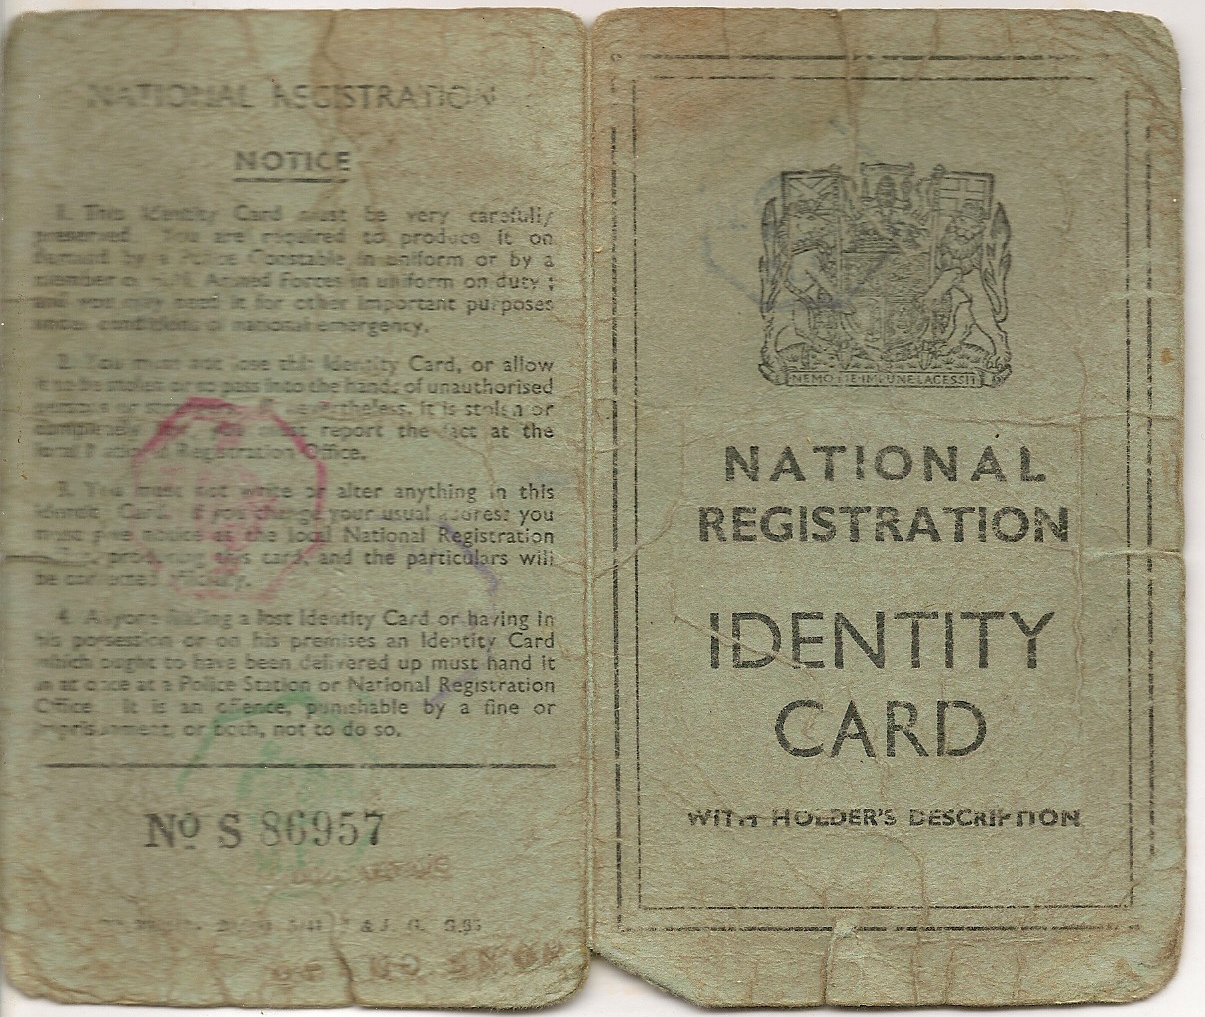 image of identity card front and back